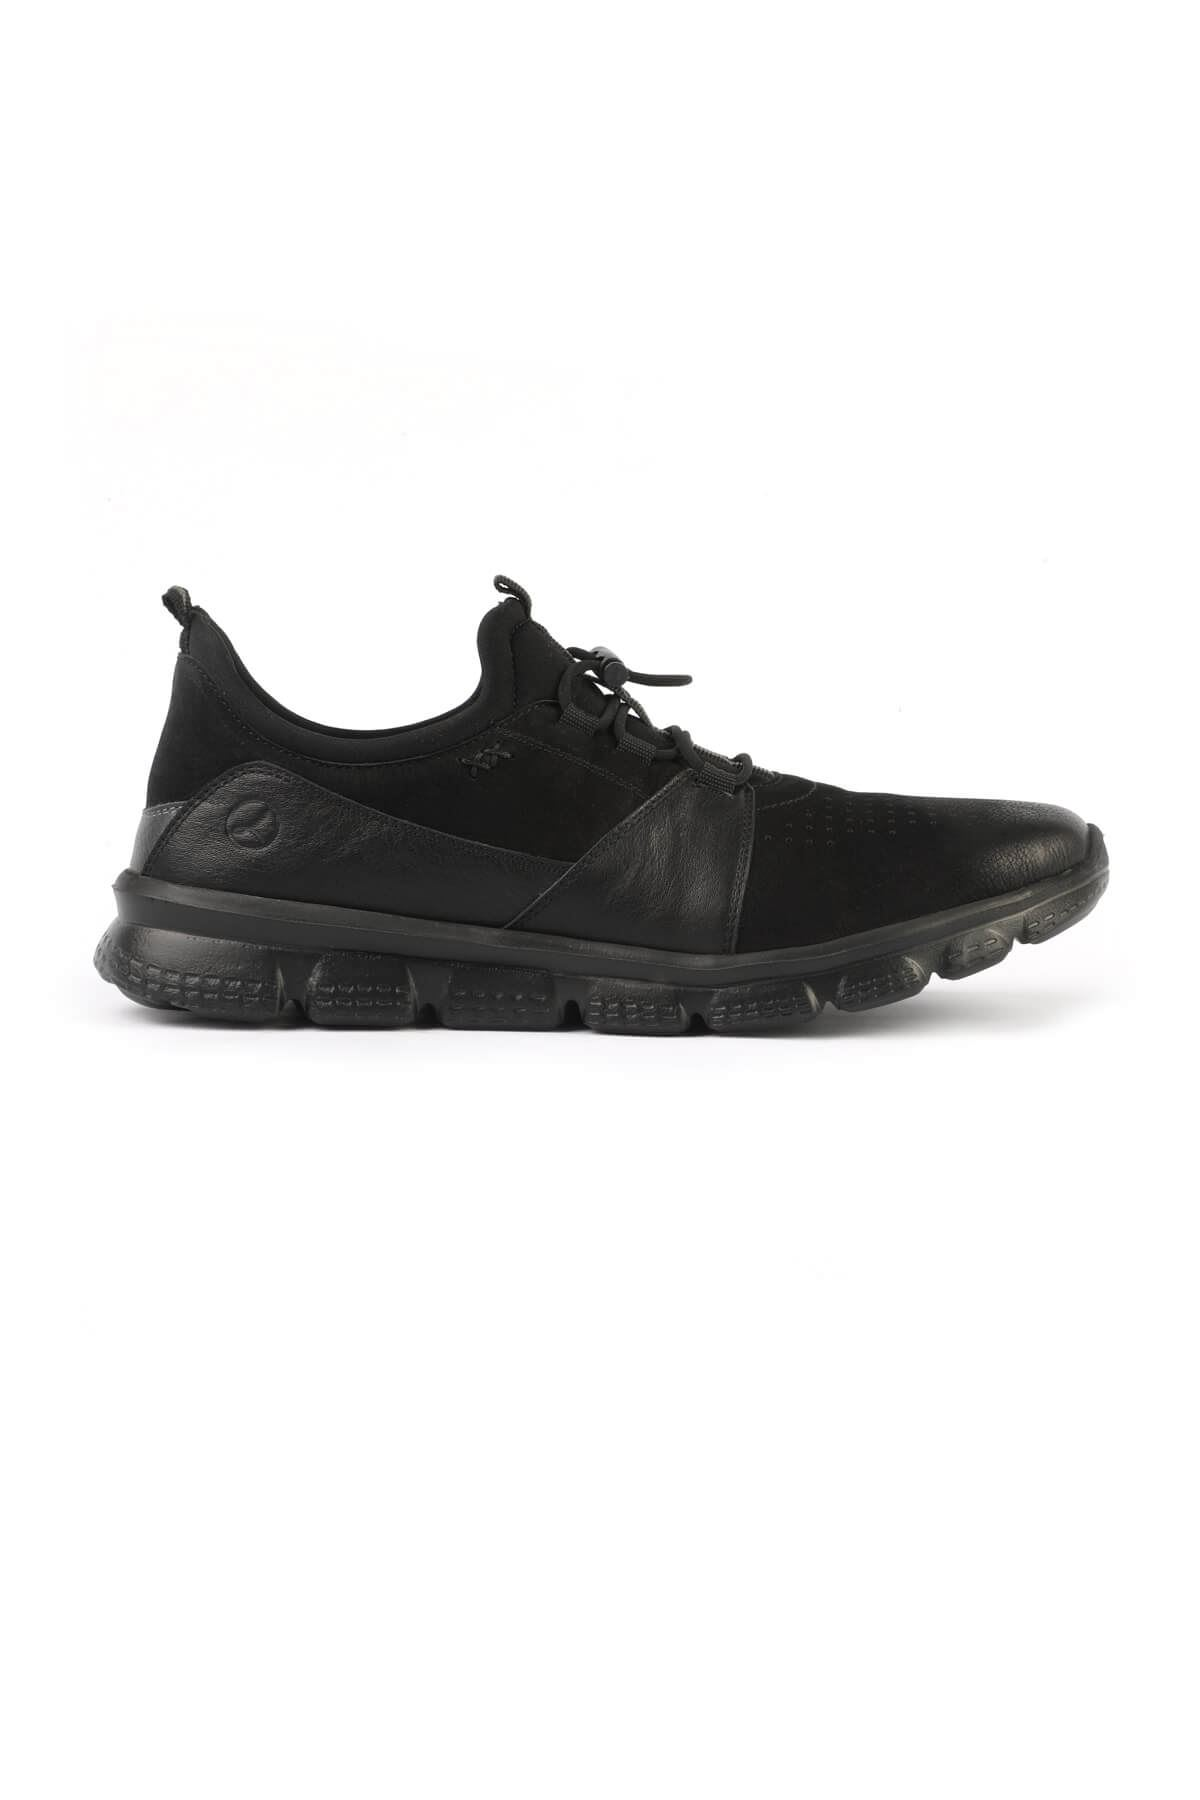 Libero 3123 Black Sports Shoes